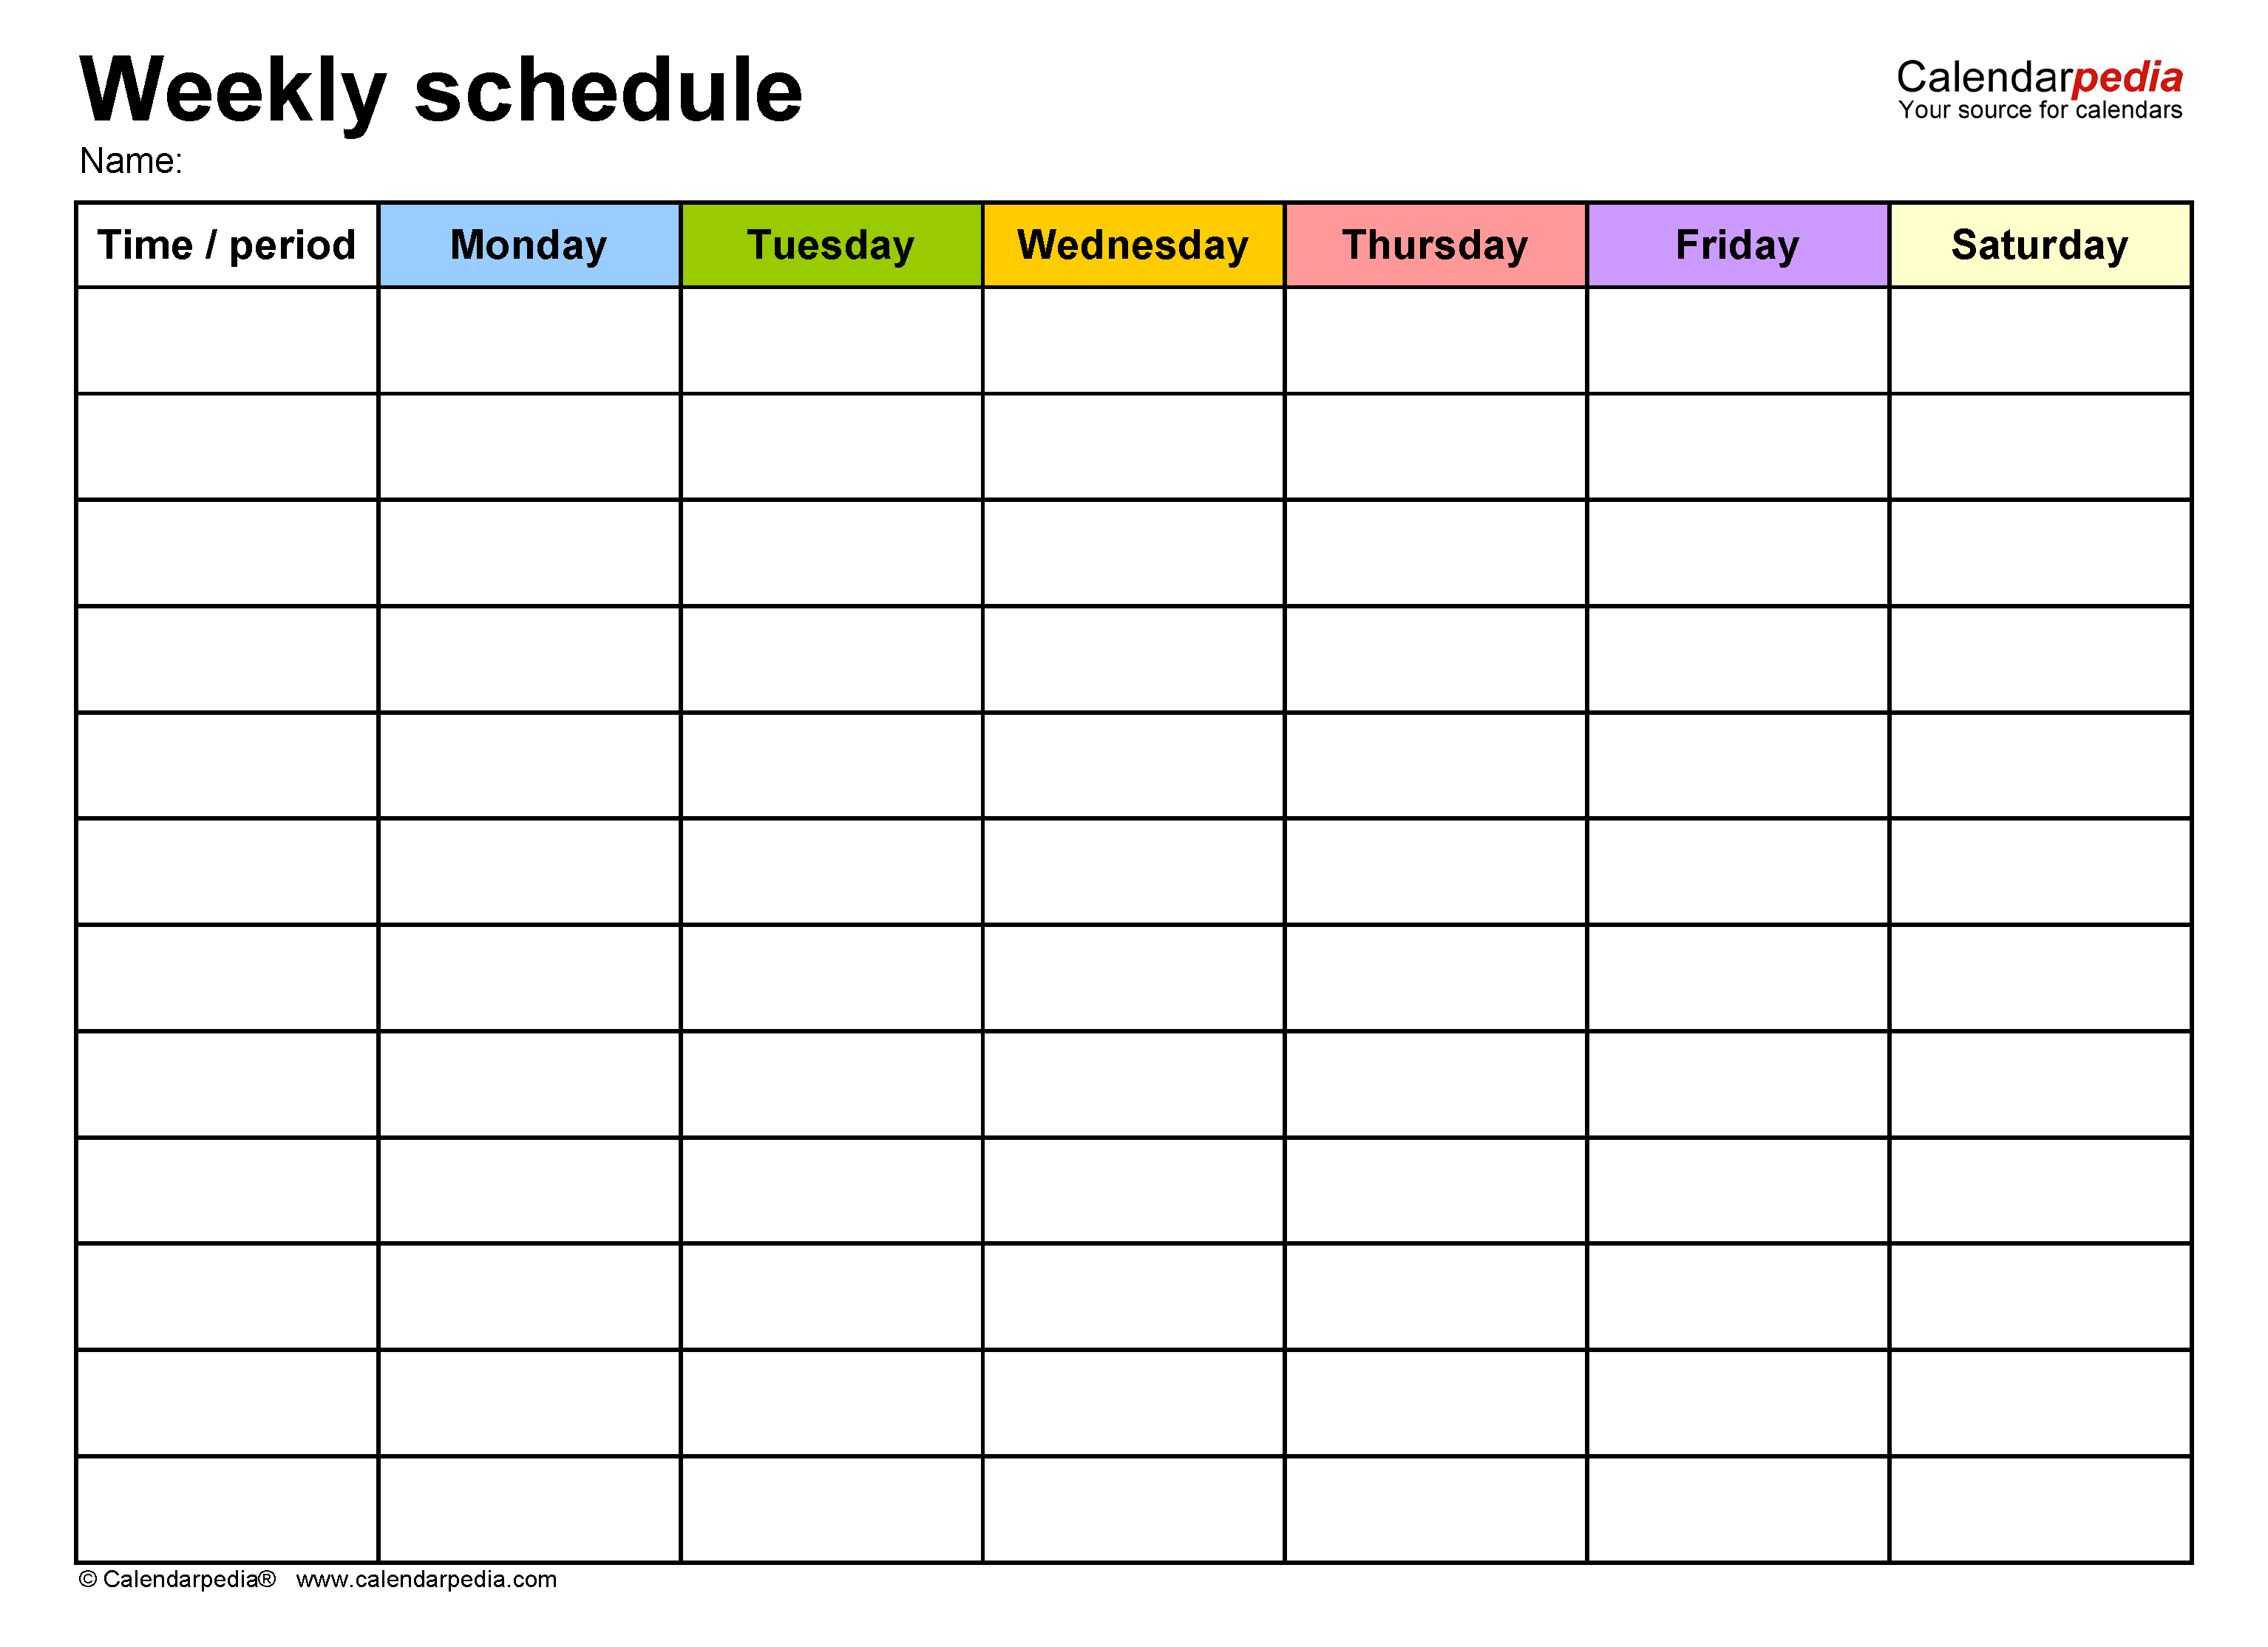 Free Weekly Schedule Templates For Word - 18 Templates with Sunday Thru Saturday Blank Calendar